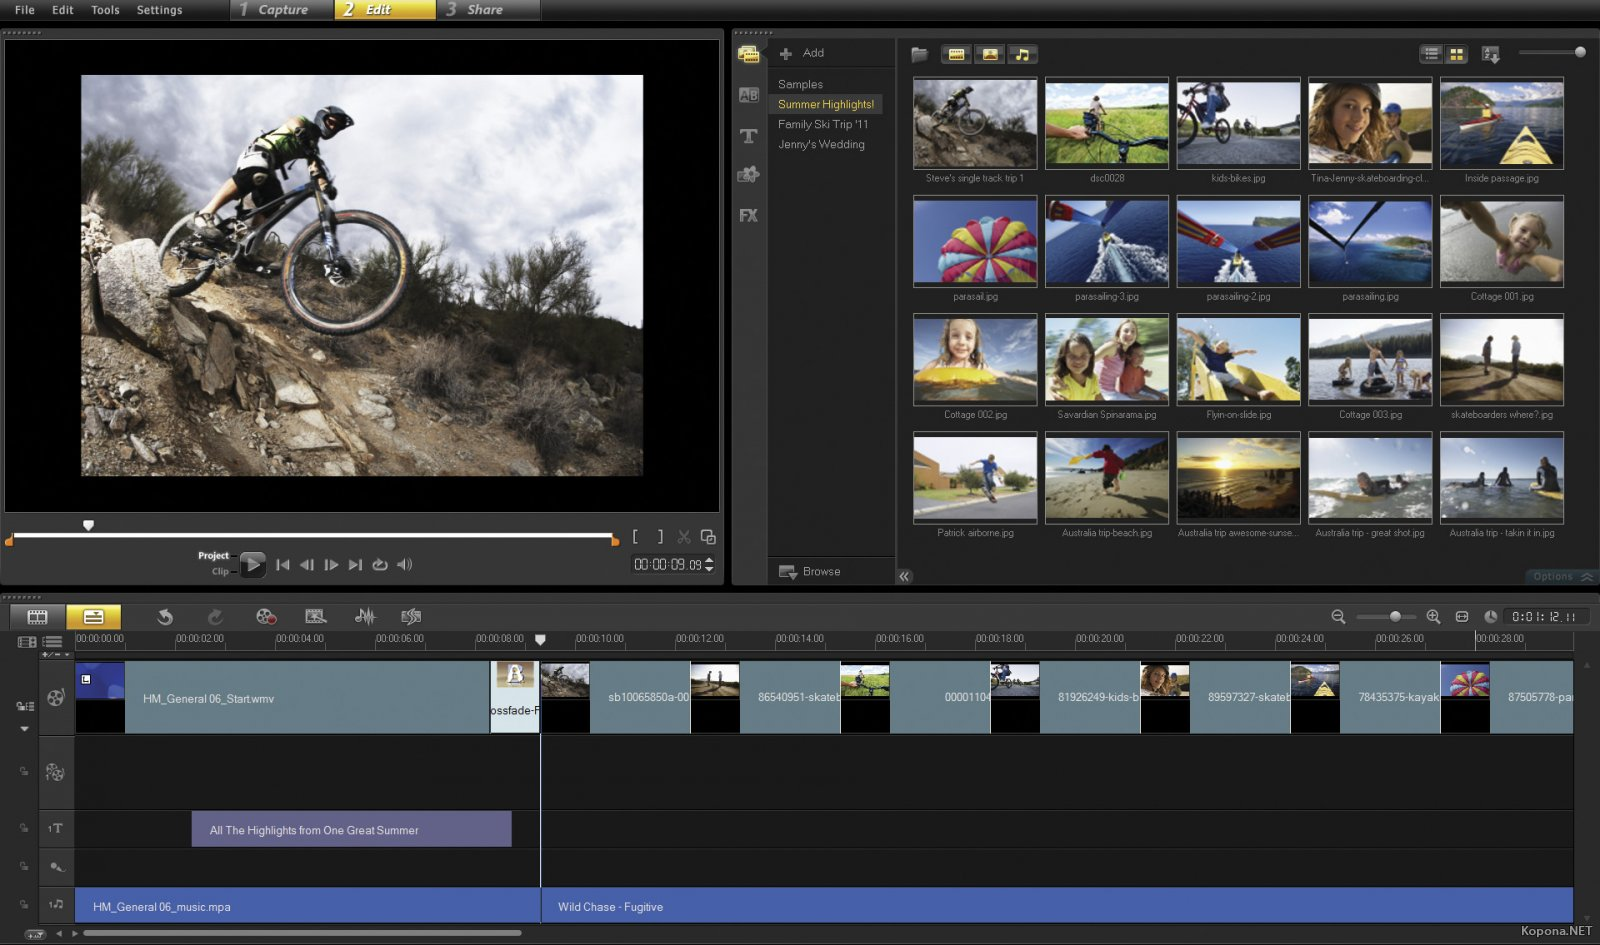 Corel videostudio pro x4 v14.0.0.342 multilingual incl keymaker core